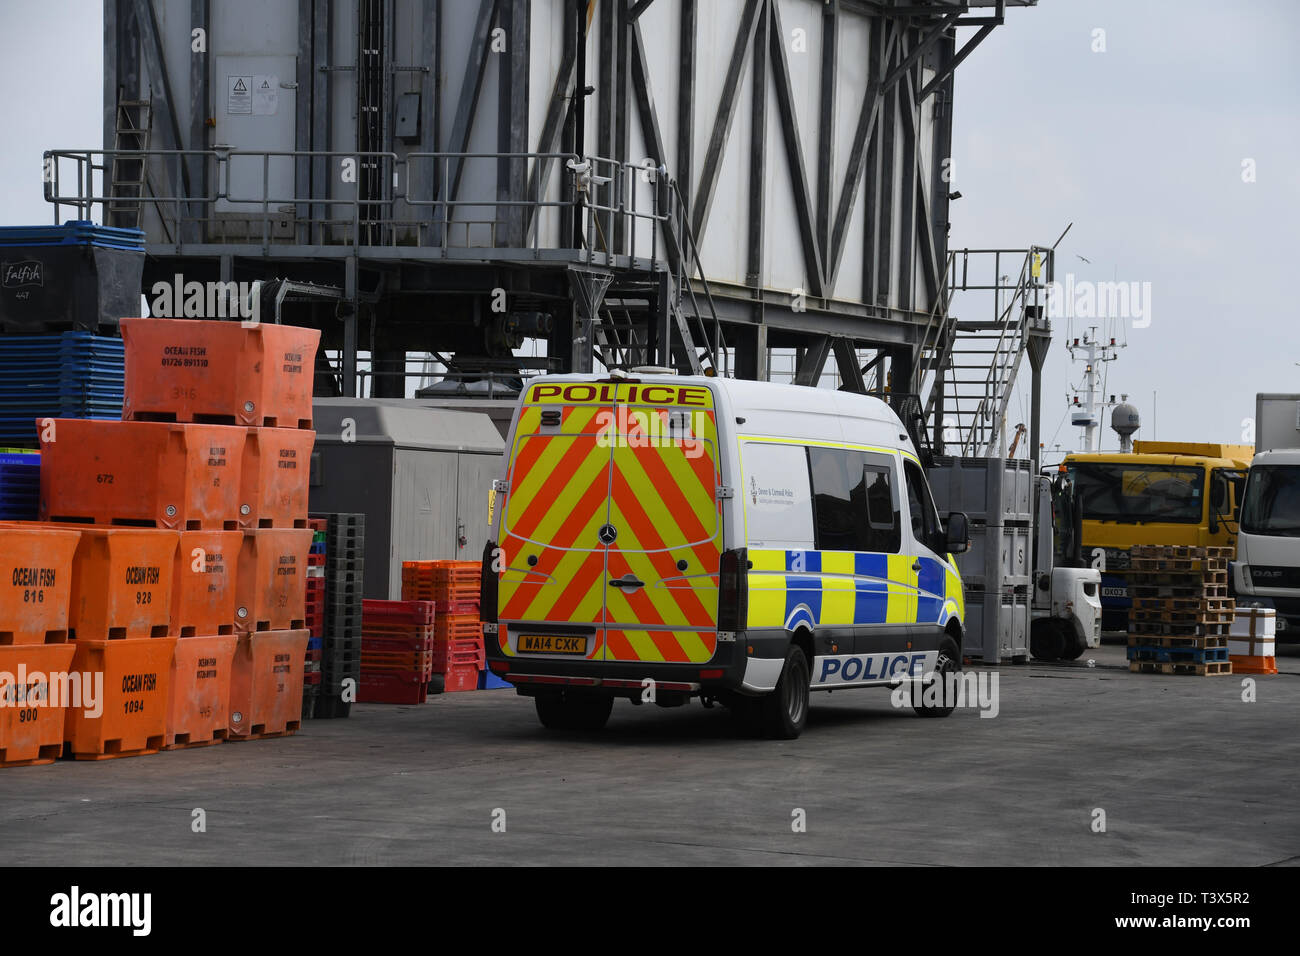 Newlyn, Cornwall, UK. 12th April 2019. Police have made a number of arrests under the modern slavery act at Cullompton after around 30 people were round in the back of a van. They were originally seen getting into the van at Newlyn earlier on this morning. There is still a police prescence at Newlyn harbour - pictured here. Credit: Simon Maycock/Alamy Live News Stock Photo